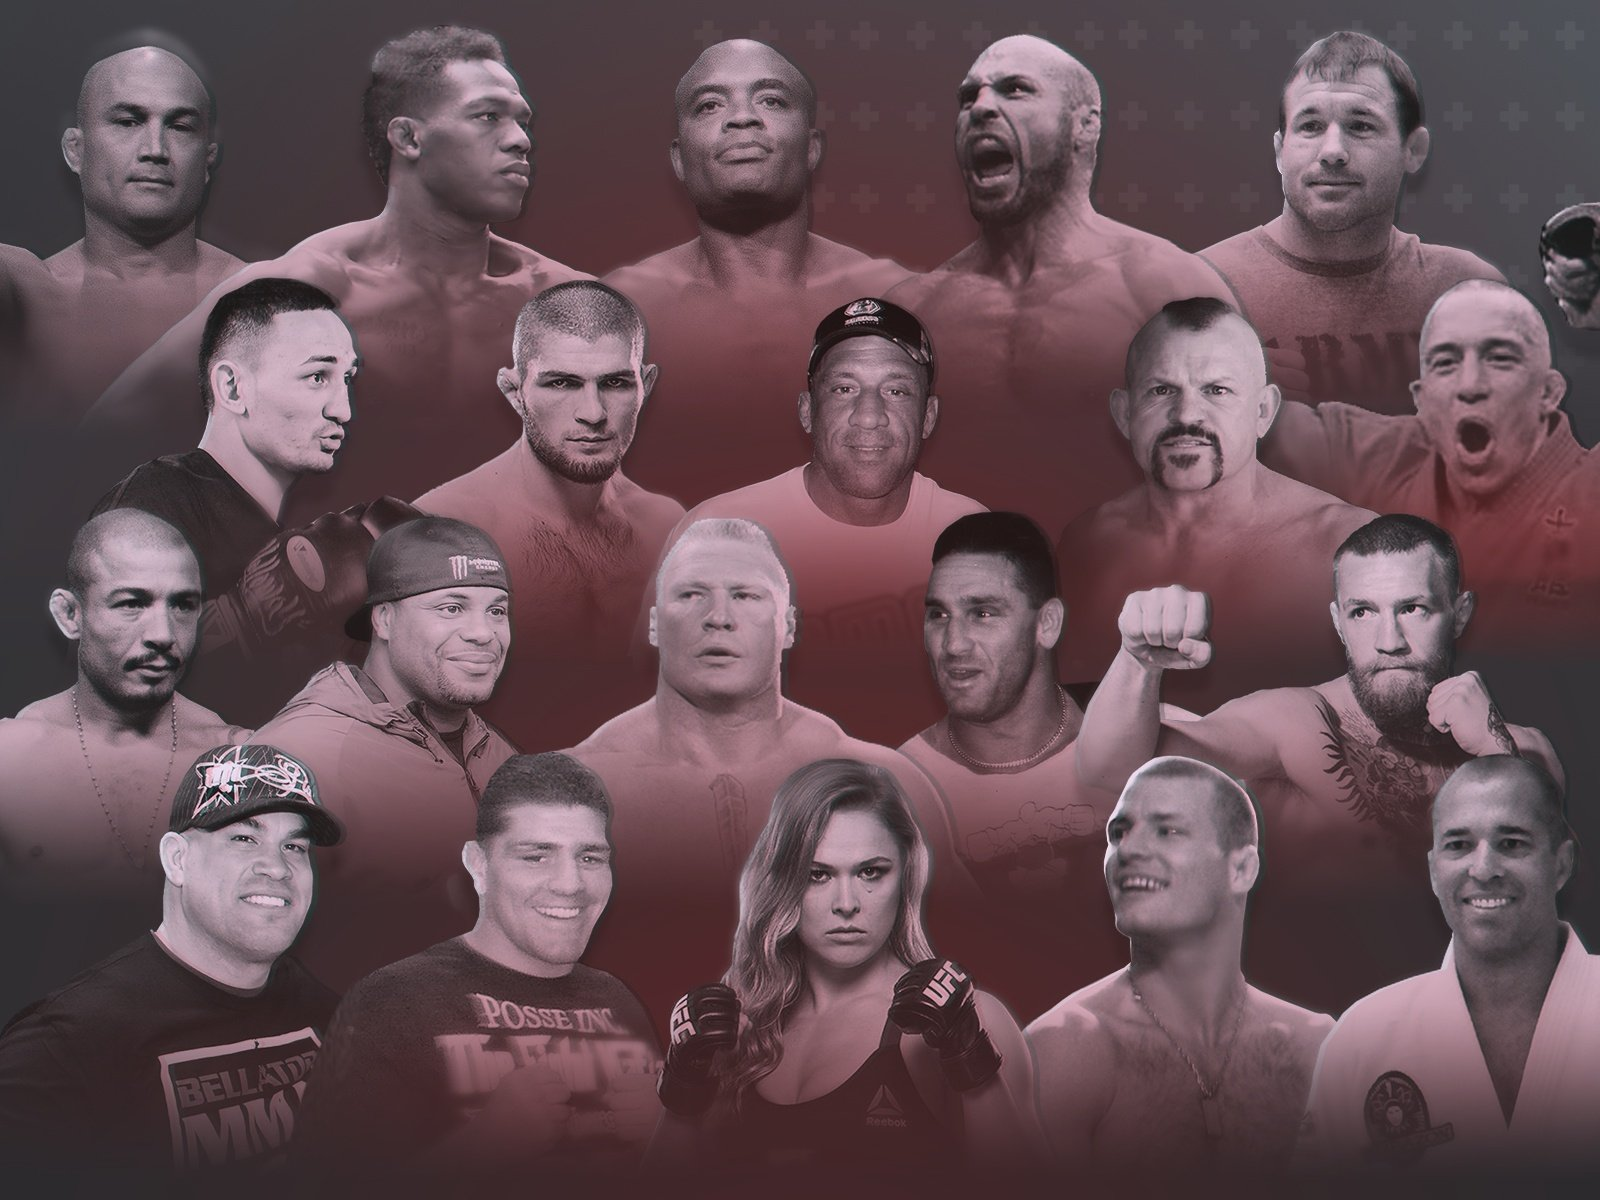 How Many of The 20 Most Famous UFC Fighters Do You Recognize?